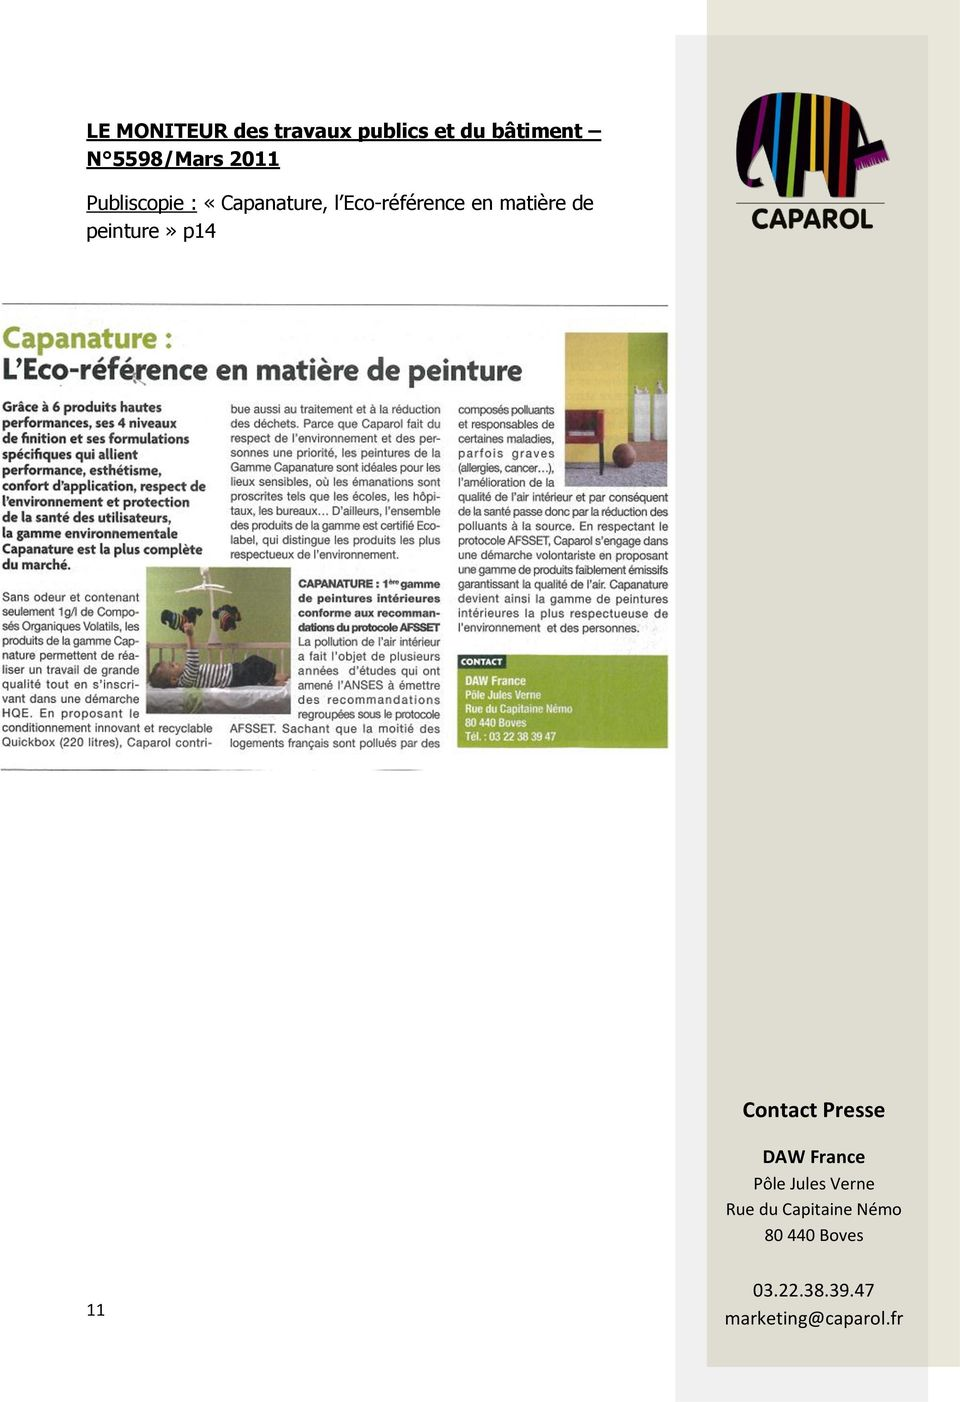 Publiscopie : «Capanature, l